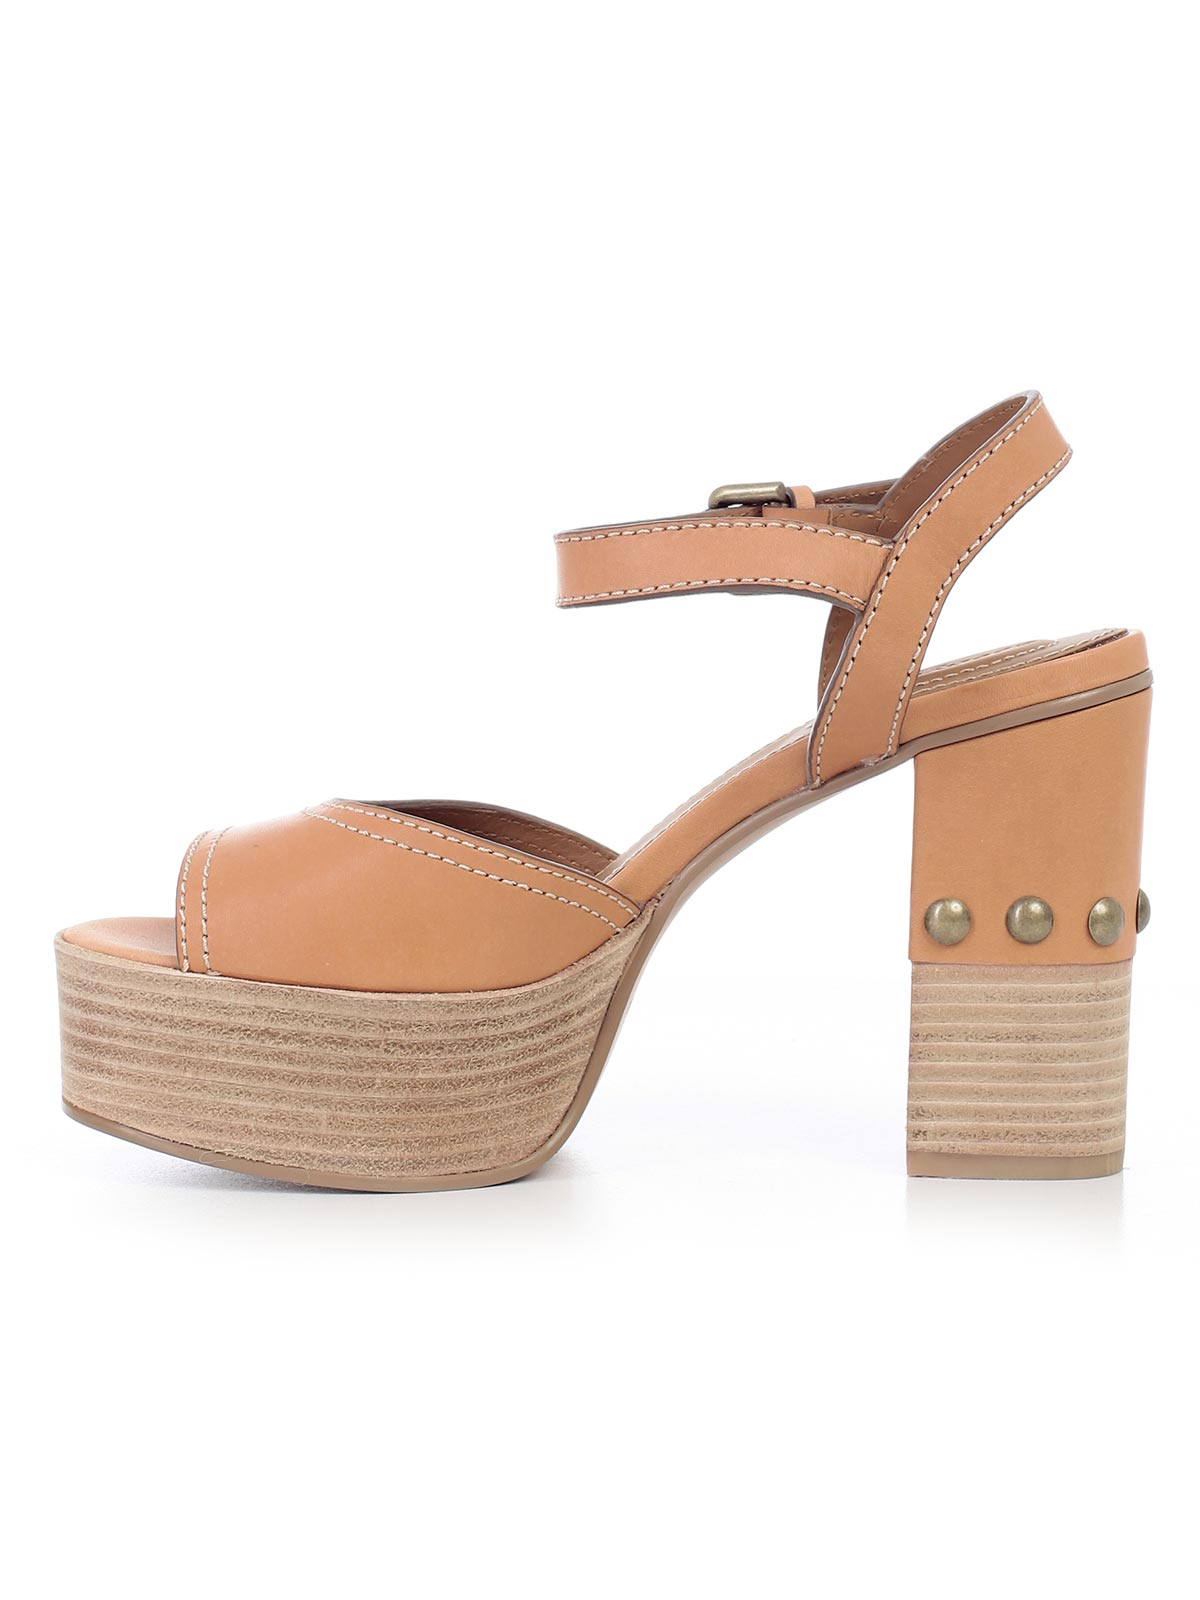 Picture of Seebychloe Footwear